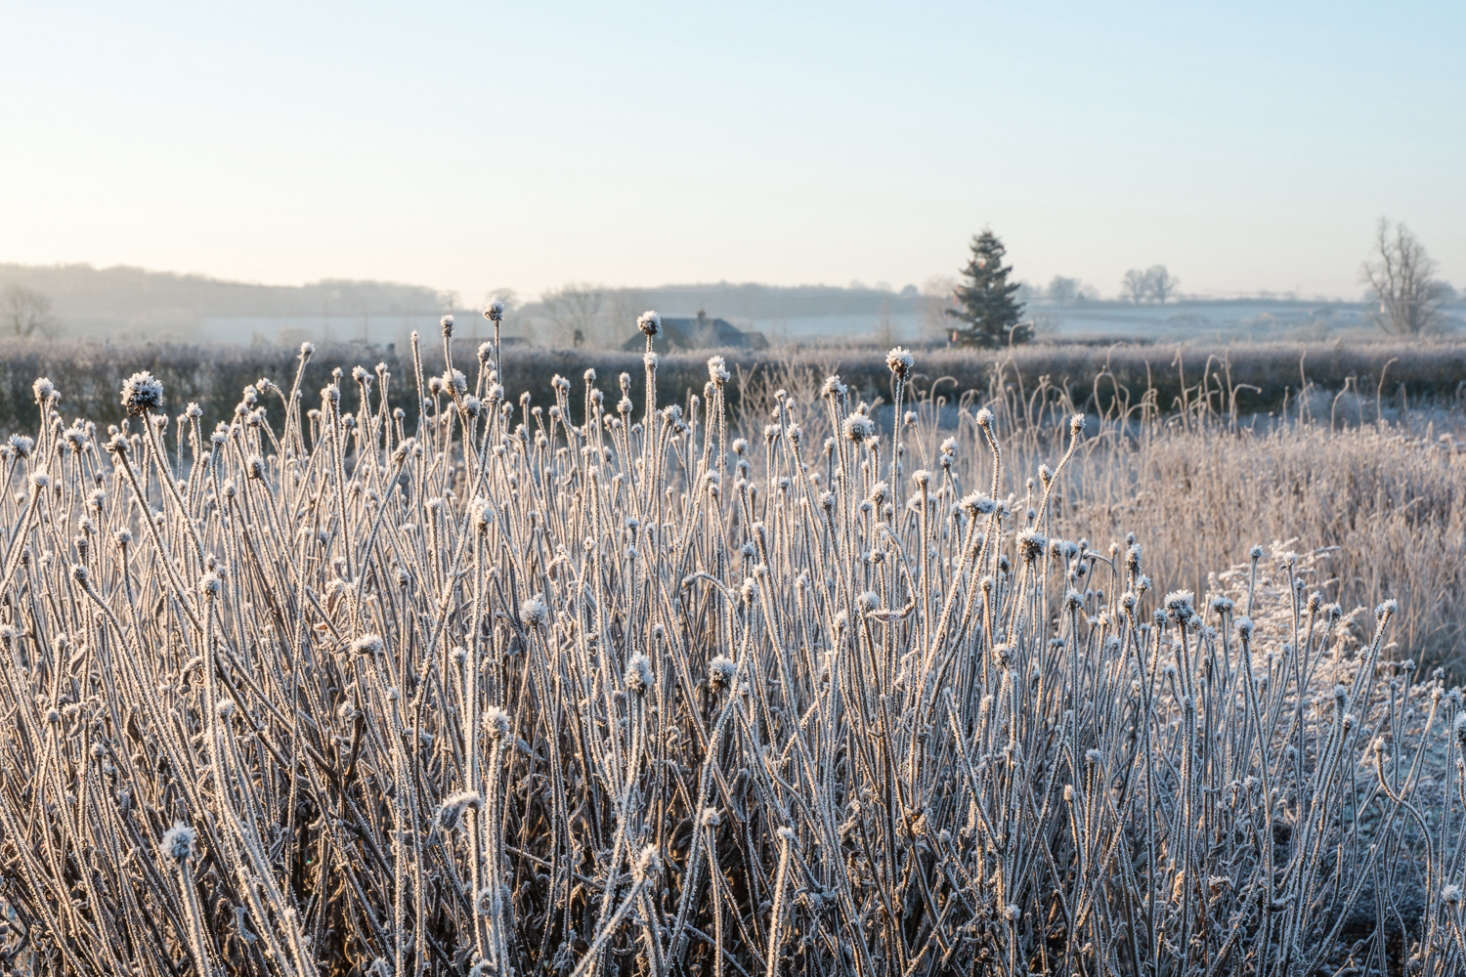 Frosted seed heads of Echinacea pallida at Oudolf Field at Hauser and Wirth, Somerset. Photograph by Heather Edwards. See more at Designer Visit: Piet Oudolf's Otherworldly Garden at Hauser & Wirth Somerset.